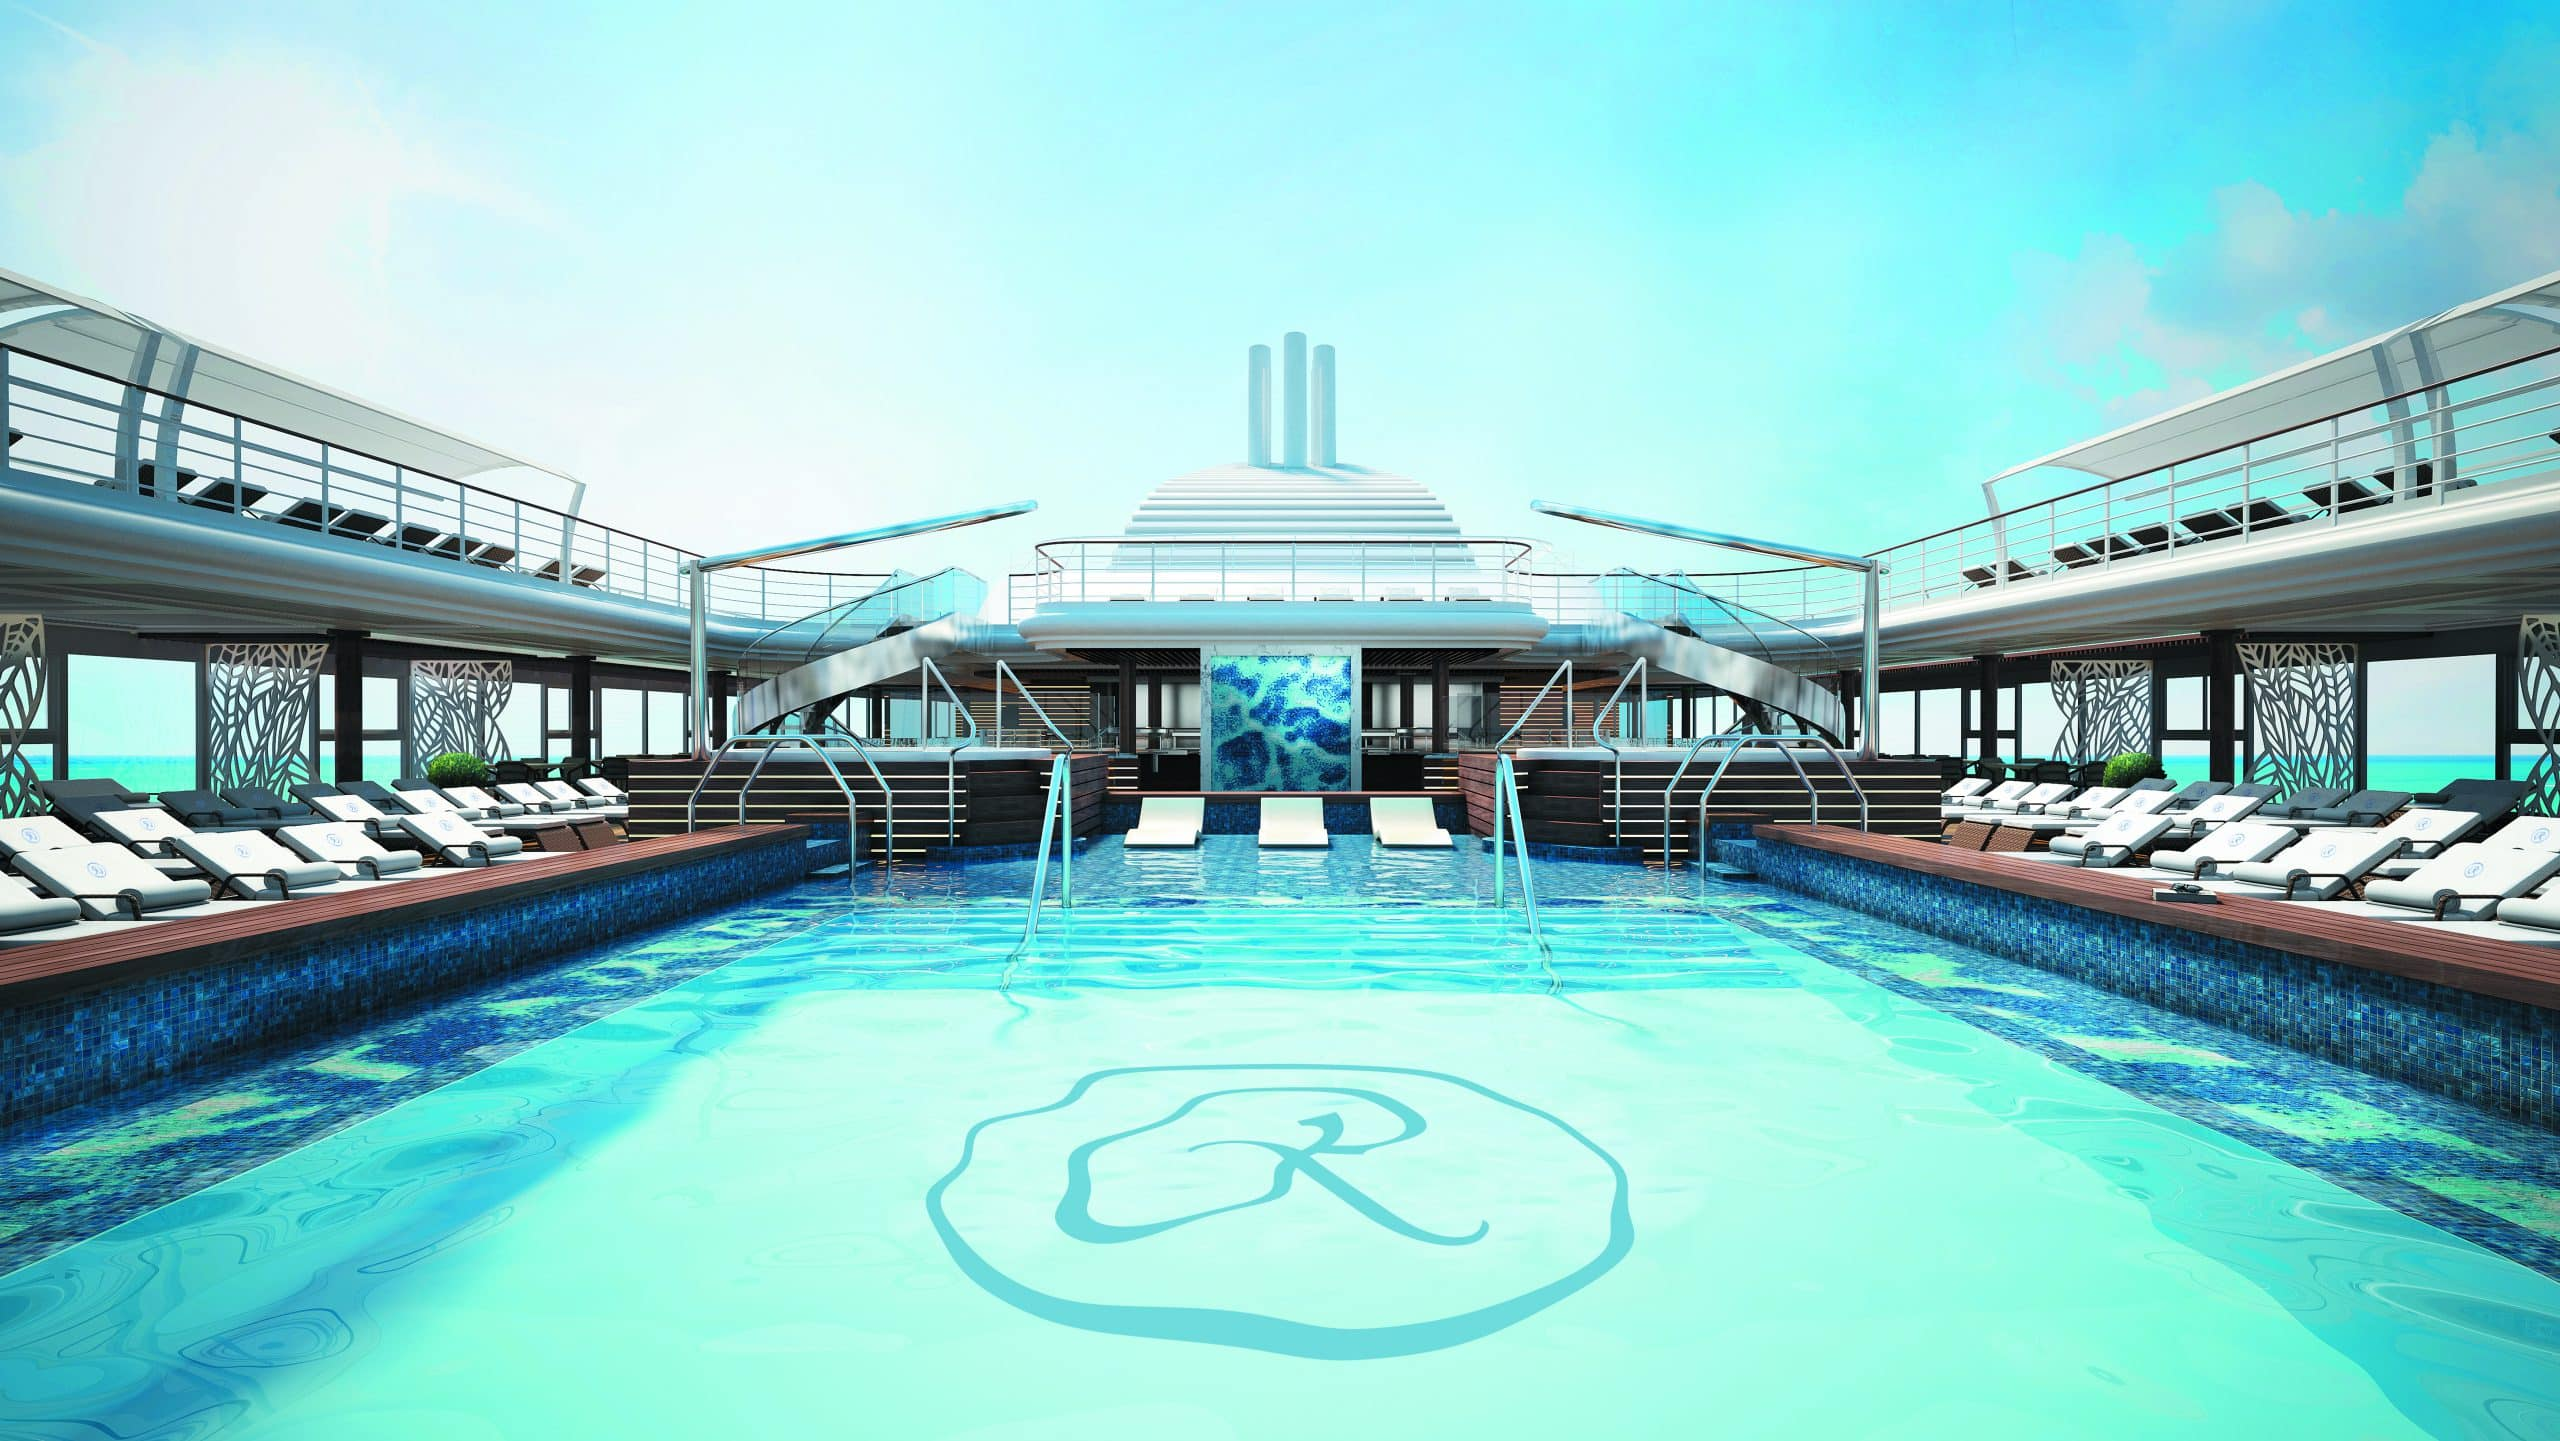 Regent Seven Seas Splendor Pool Deck Main Pool